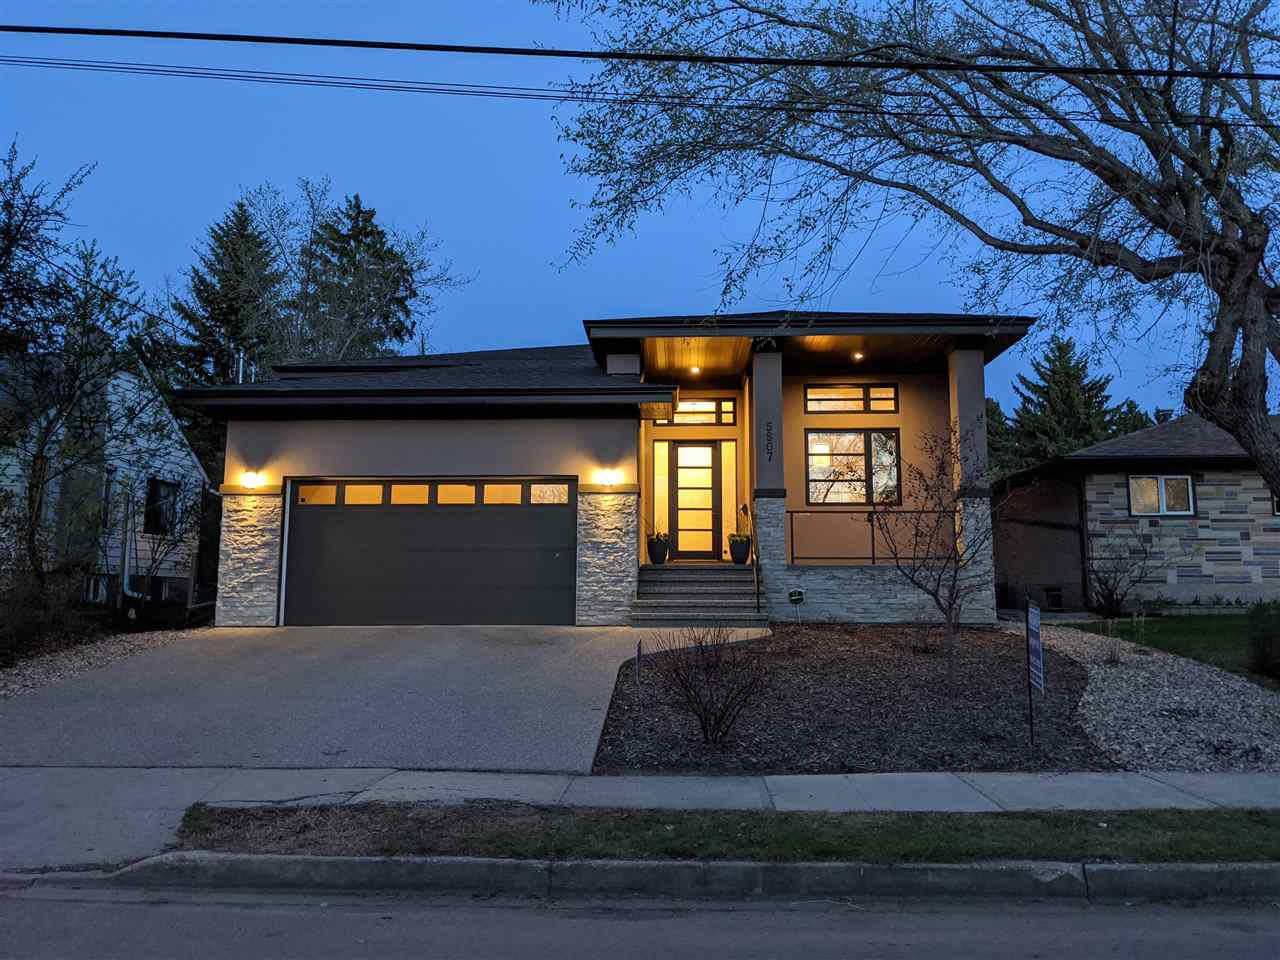 Main Photo: 5807 107 Street in Edmonton: Zone 15 House for sale : MLS®# E4197256